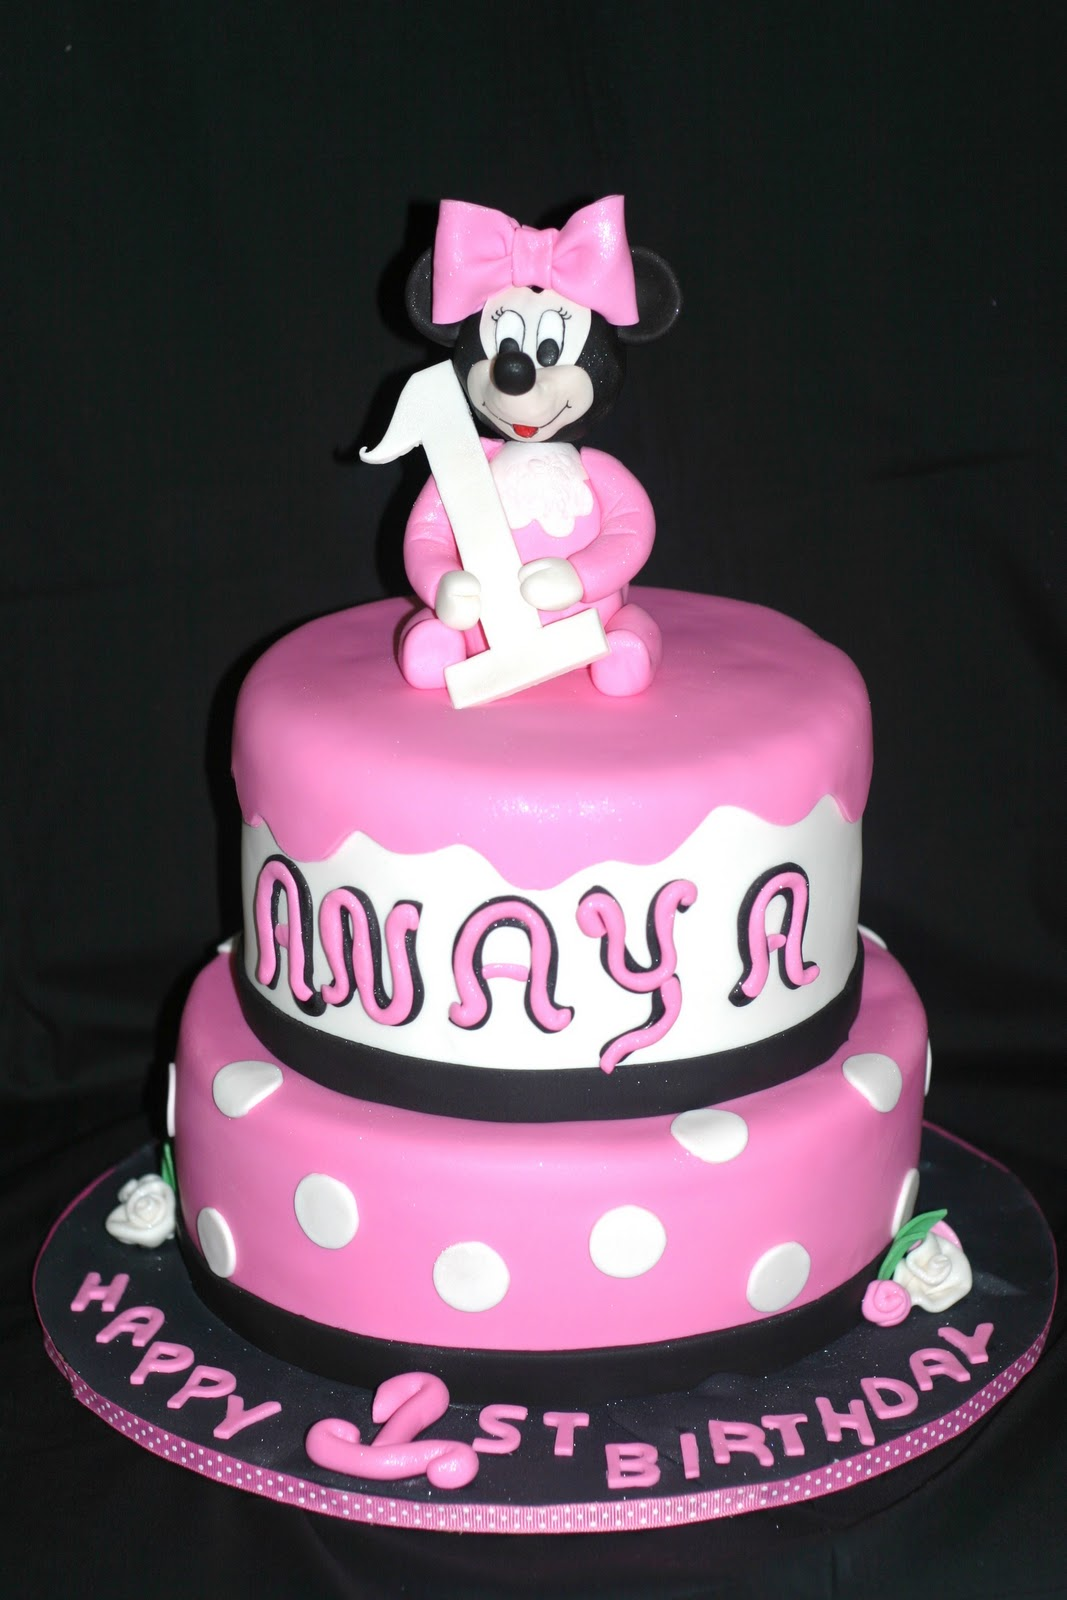 Minnie Mouse Images For Cake : My Pink Little Cake: Baby Minnie Mouse Birthday Cake